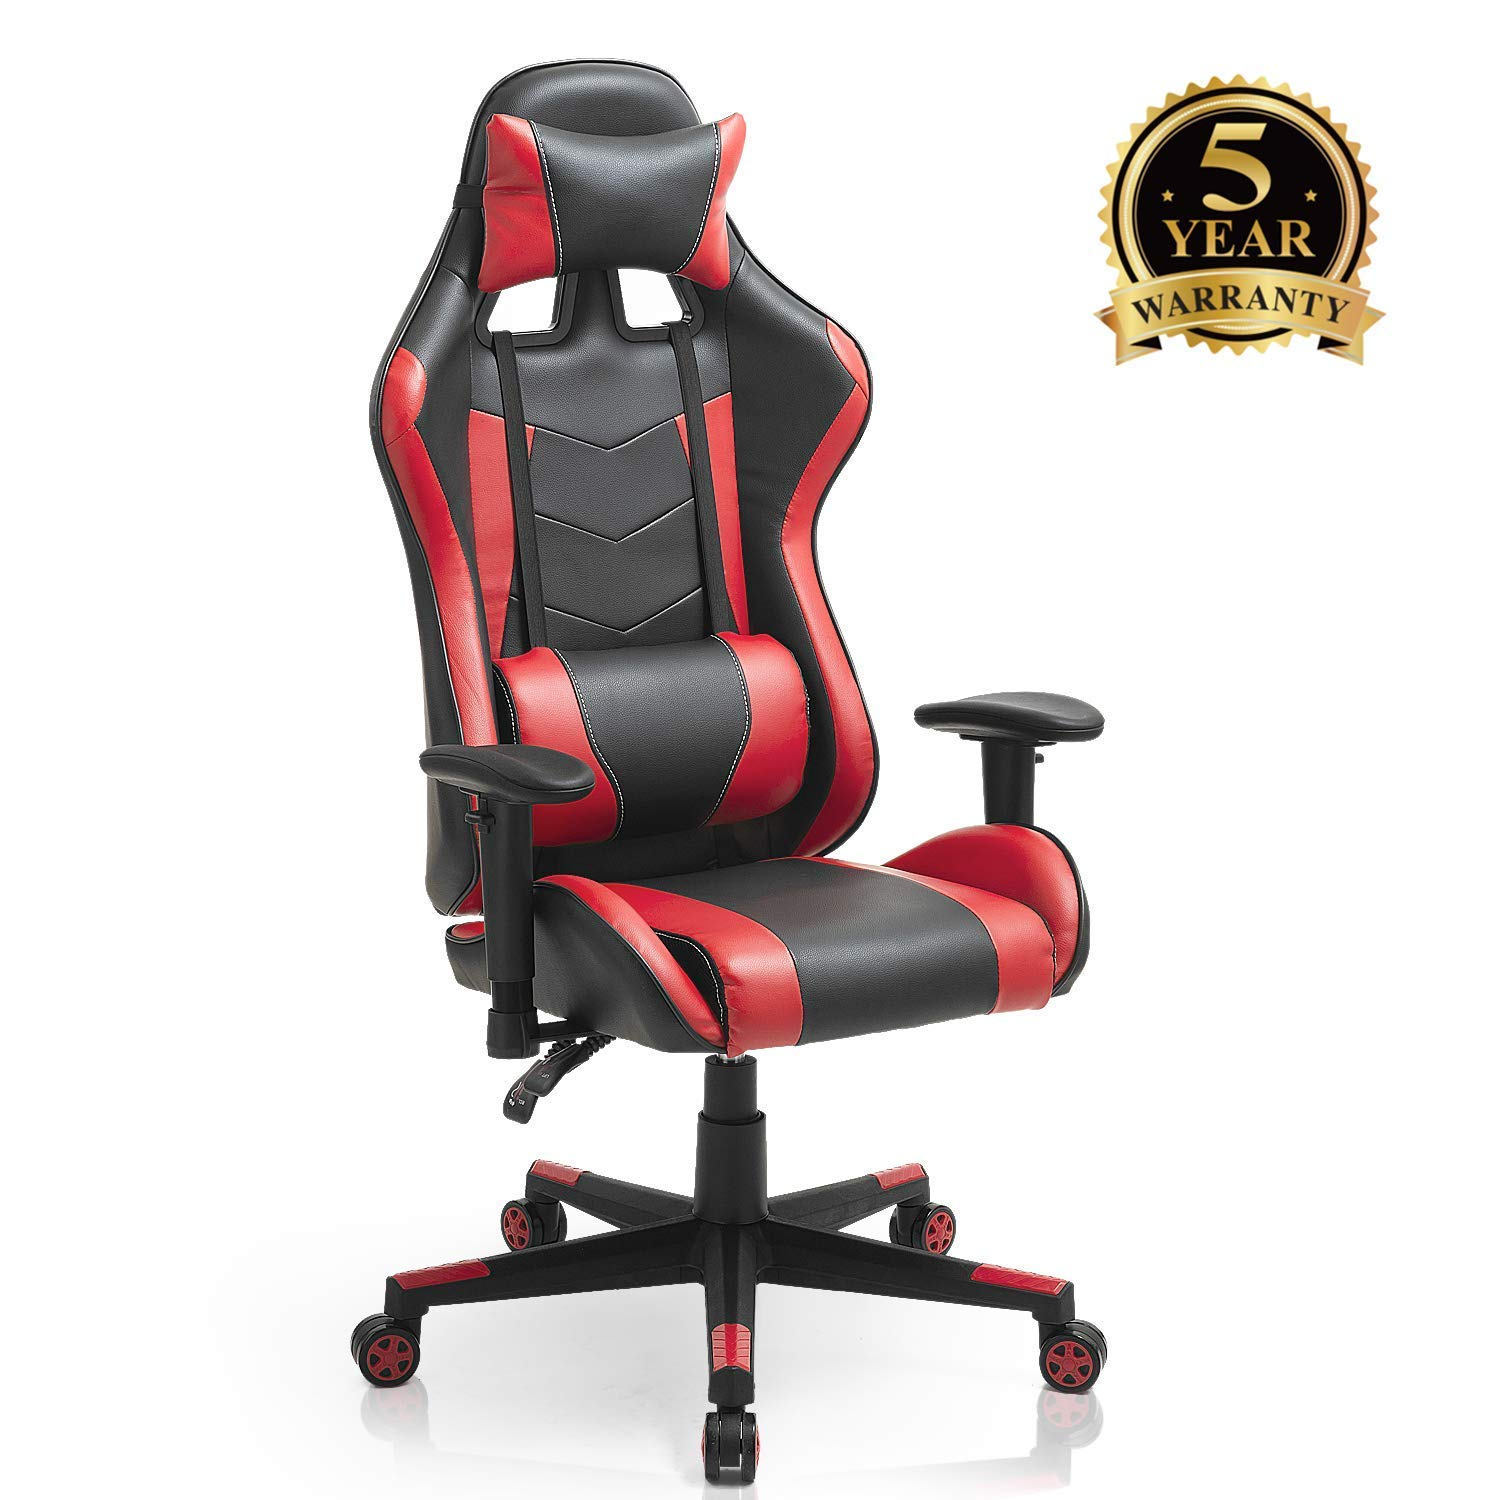 Computer Gaming Ergonomic Swivel Chair, High-Back Leather Adjustable Executive Office Chair with Flip-up Arms